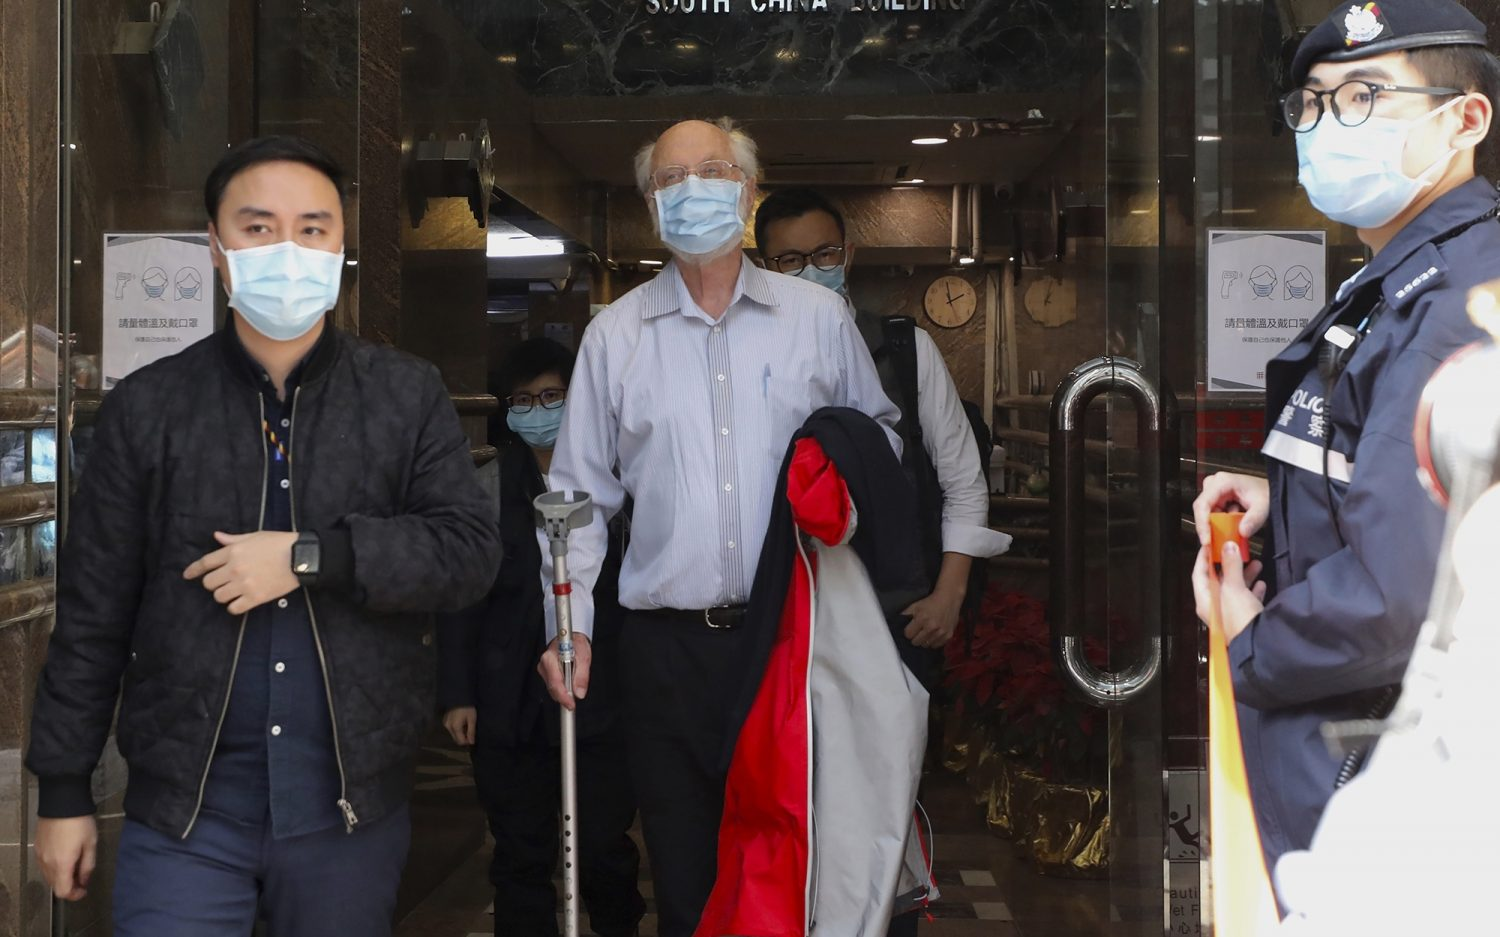 Activists rounded up in Hong Kong